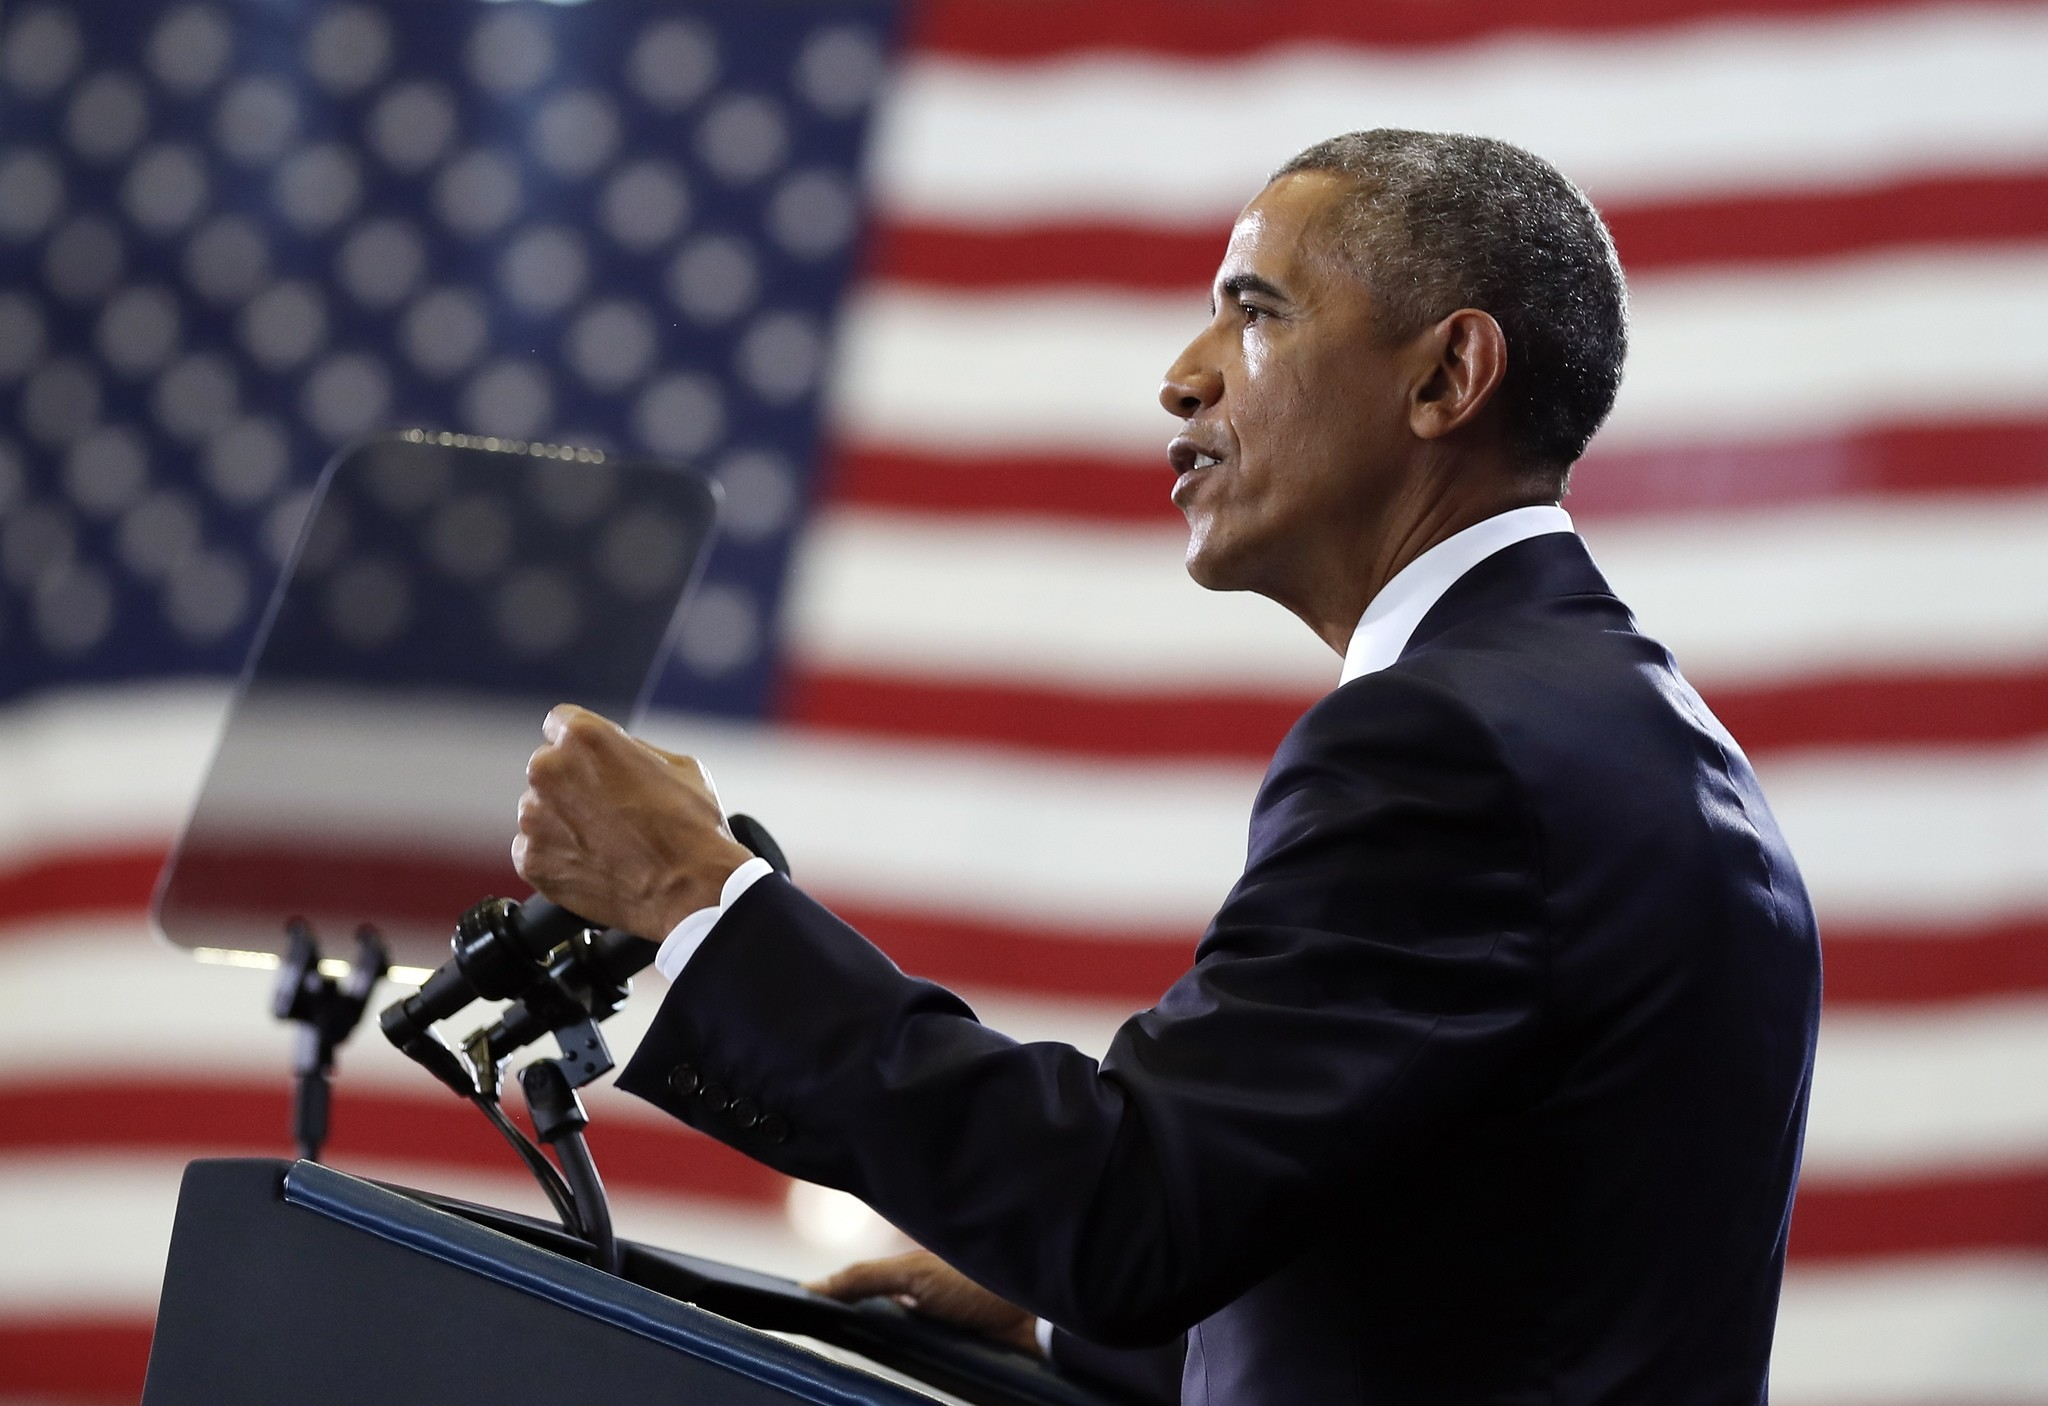 Obama speaks at MacDill Air Force Base in Tampa, Fla., Dec. 6, 2016, about the administration's approach to counterterrorism campaign. (AP Photo)